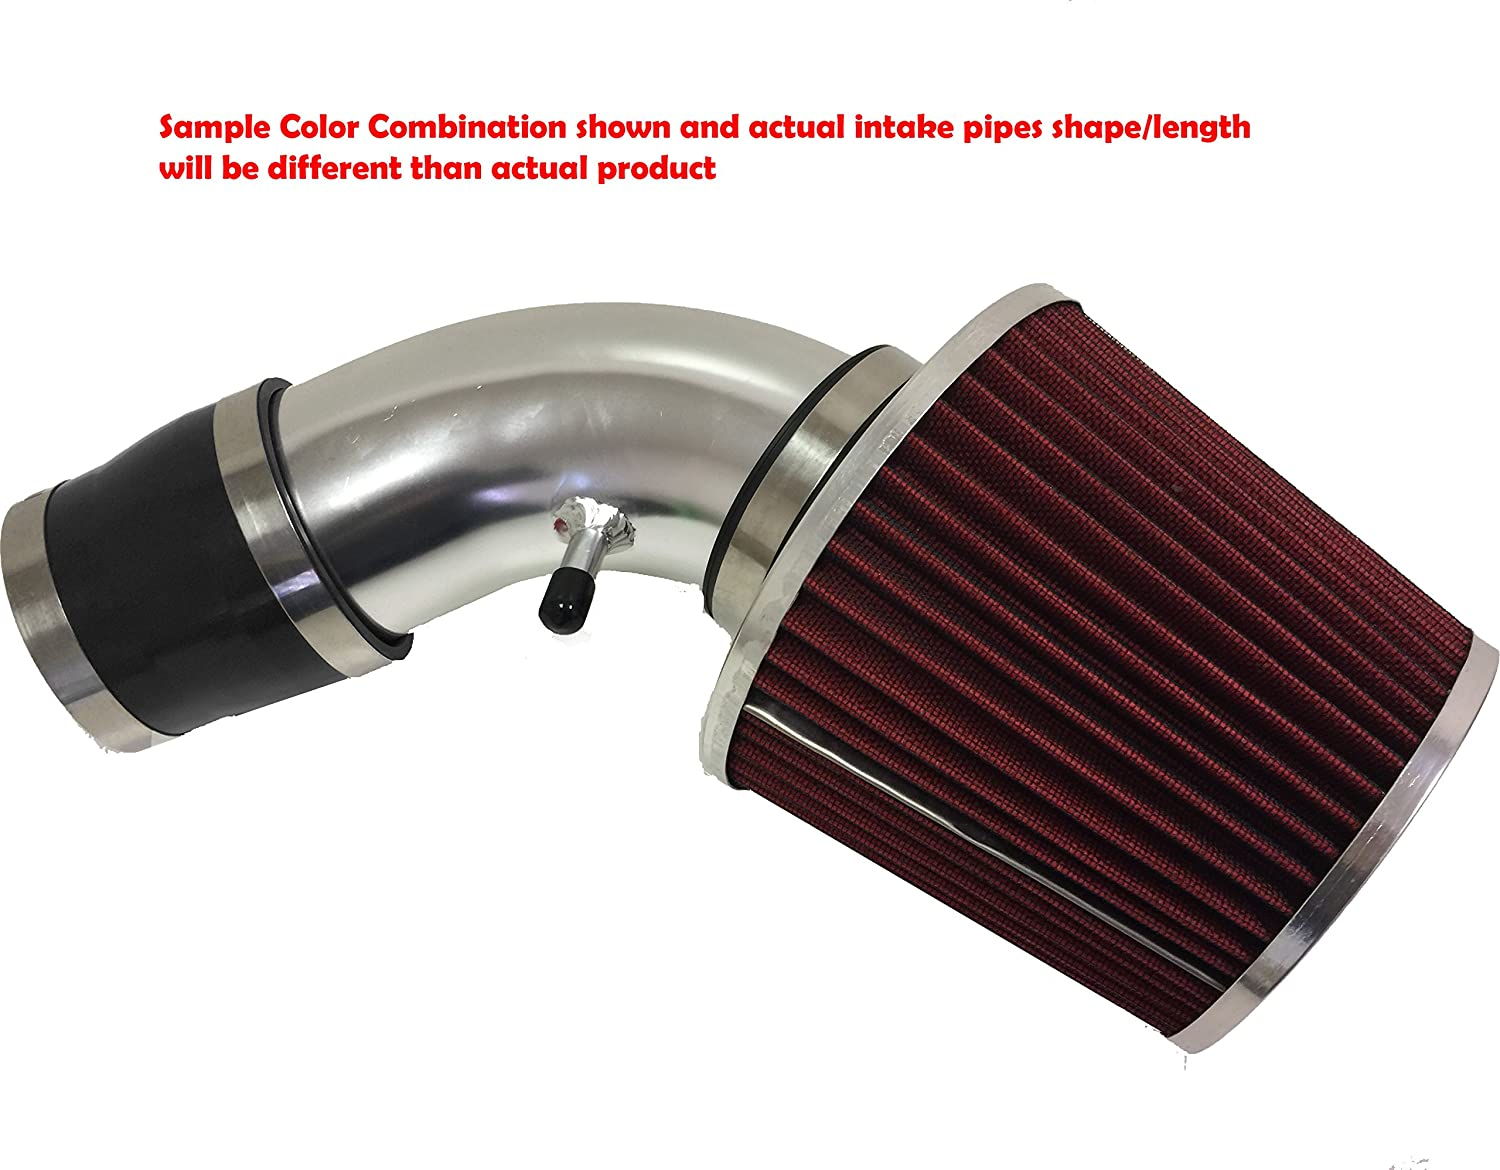 Blue Filter Accessories 2PC Design 1996 1997 1998 1999 Chevy K1500 Suburban 5.0L 5.7L V8 Air Intake Filter Kit System